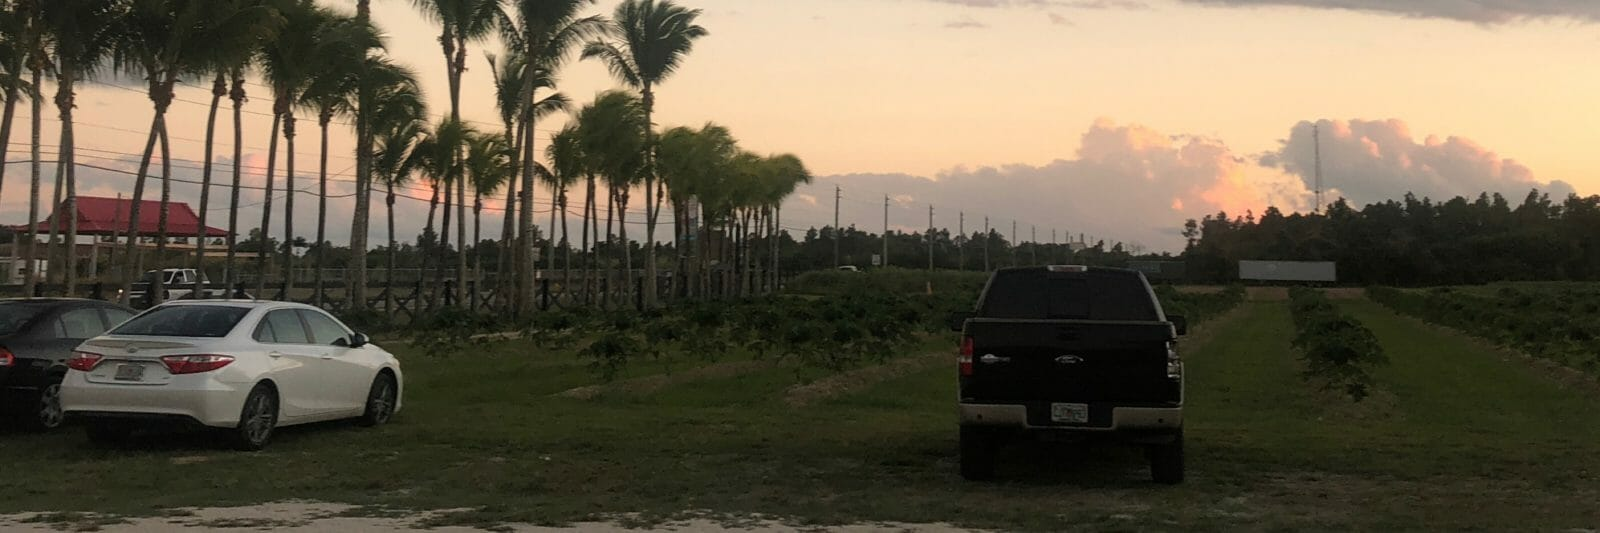 Florida City farms